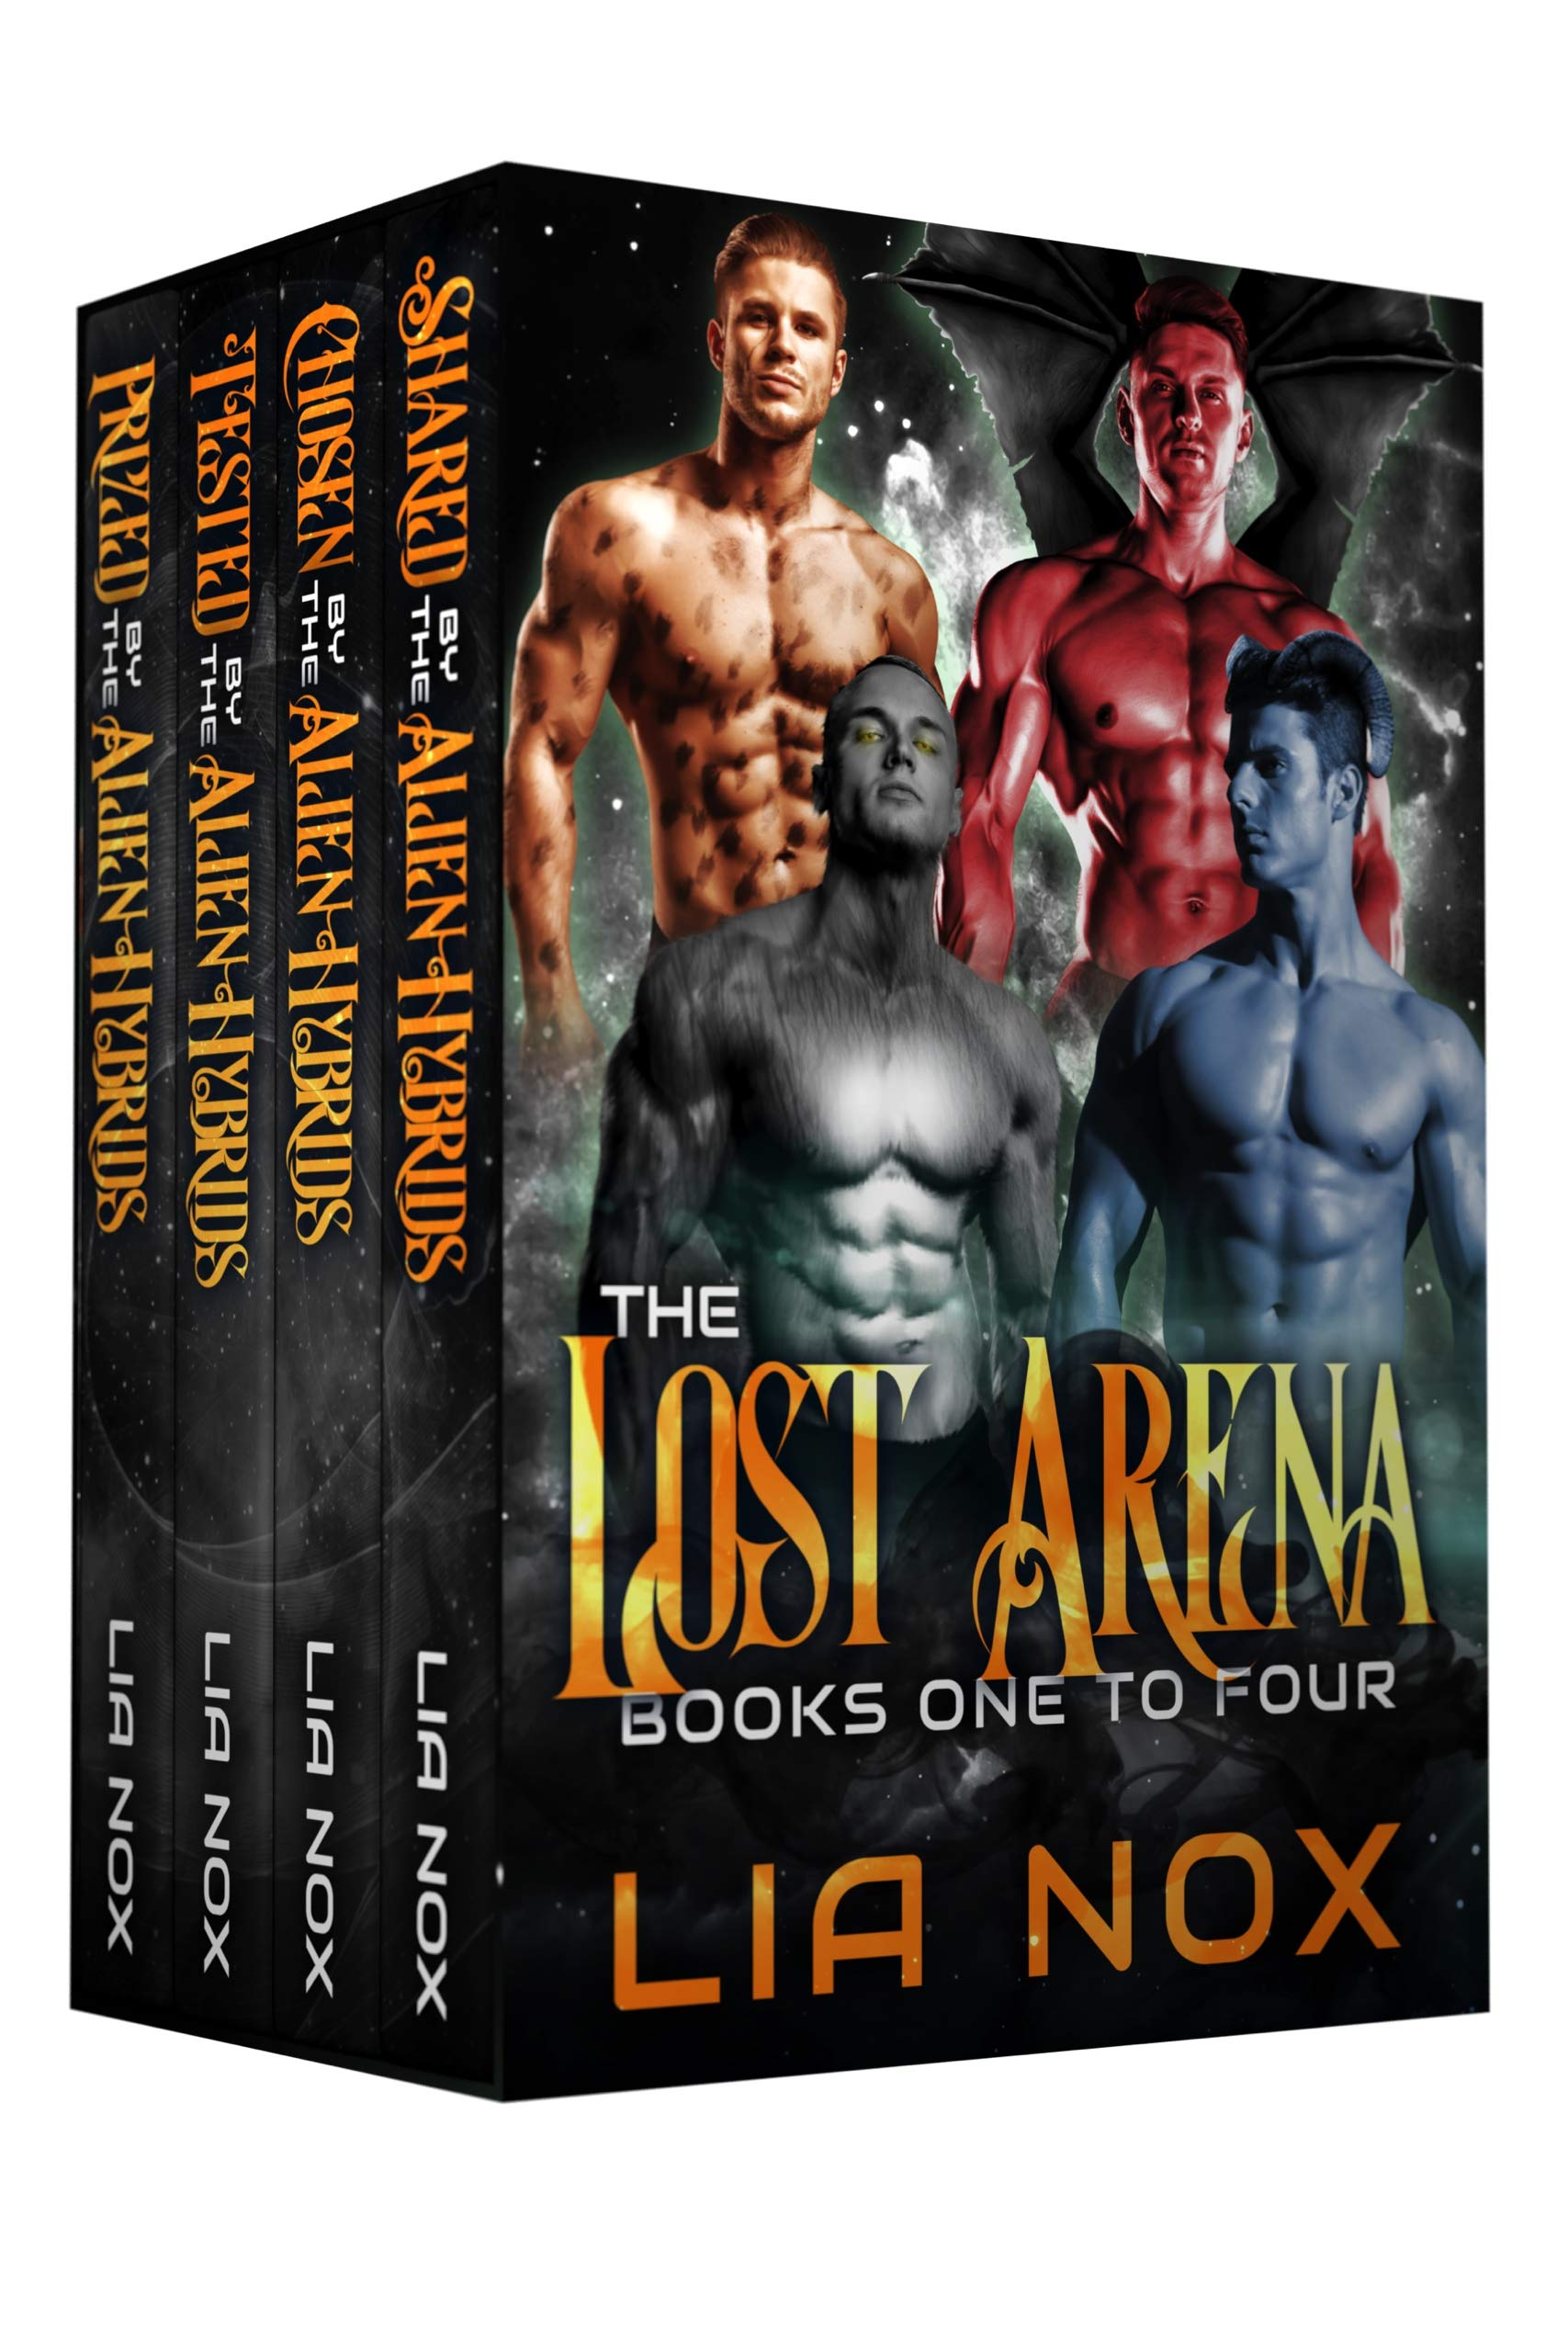 The Lost Arena: Alien Warrior Box Set: Shared by the Alien Hybrids, Chosen by the Alien Hybrids, Tested by the Alien Hybrids, Prized by the Alien Hybrids